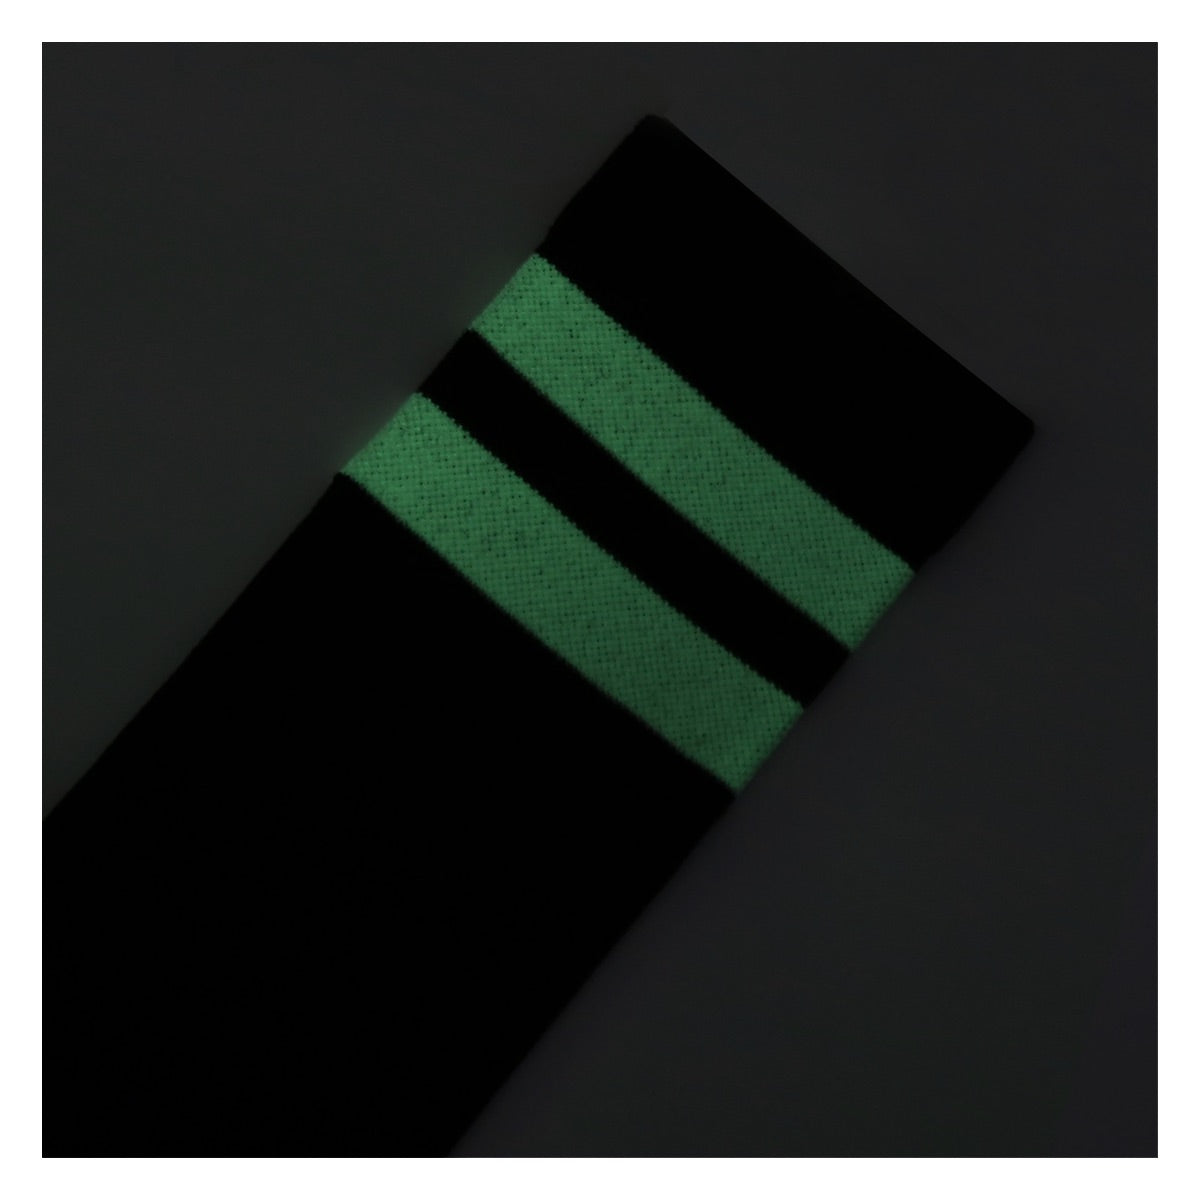 Team Socks / Reflective + Glow In The Dark